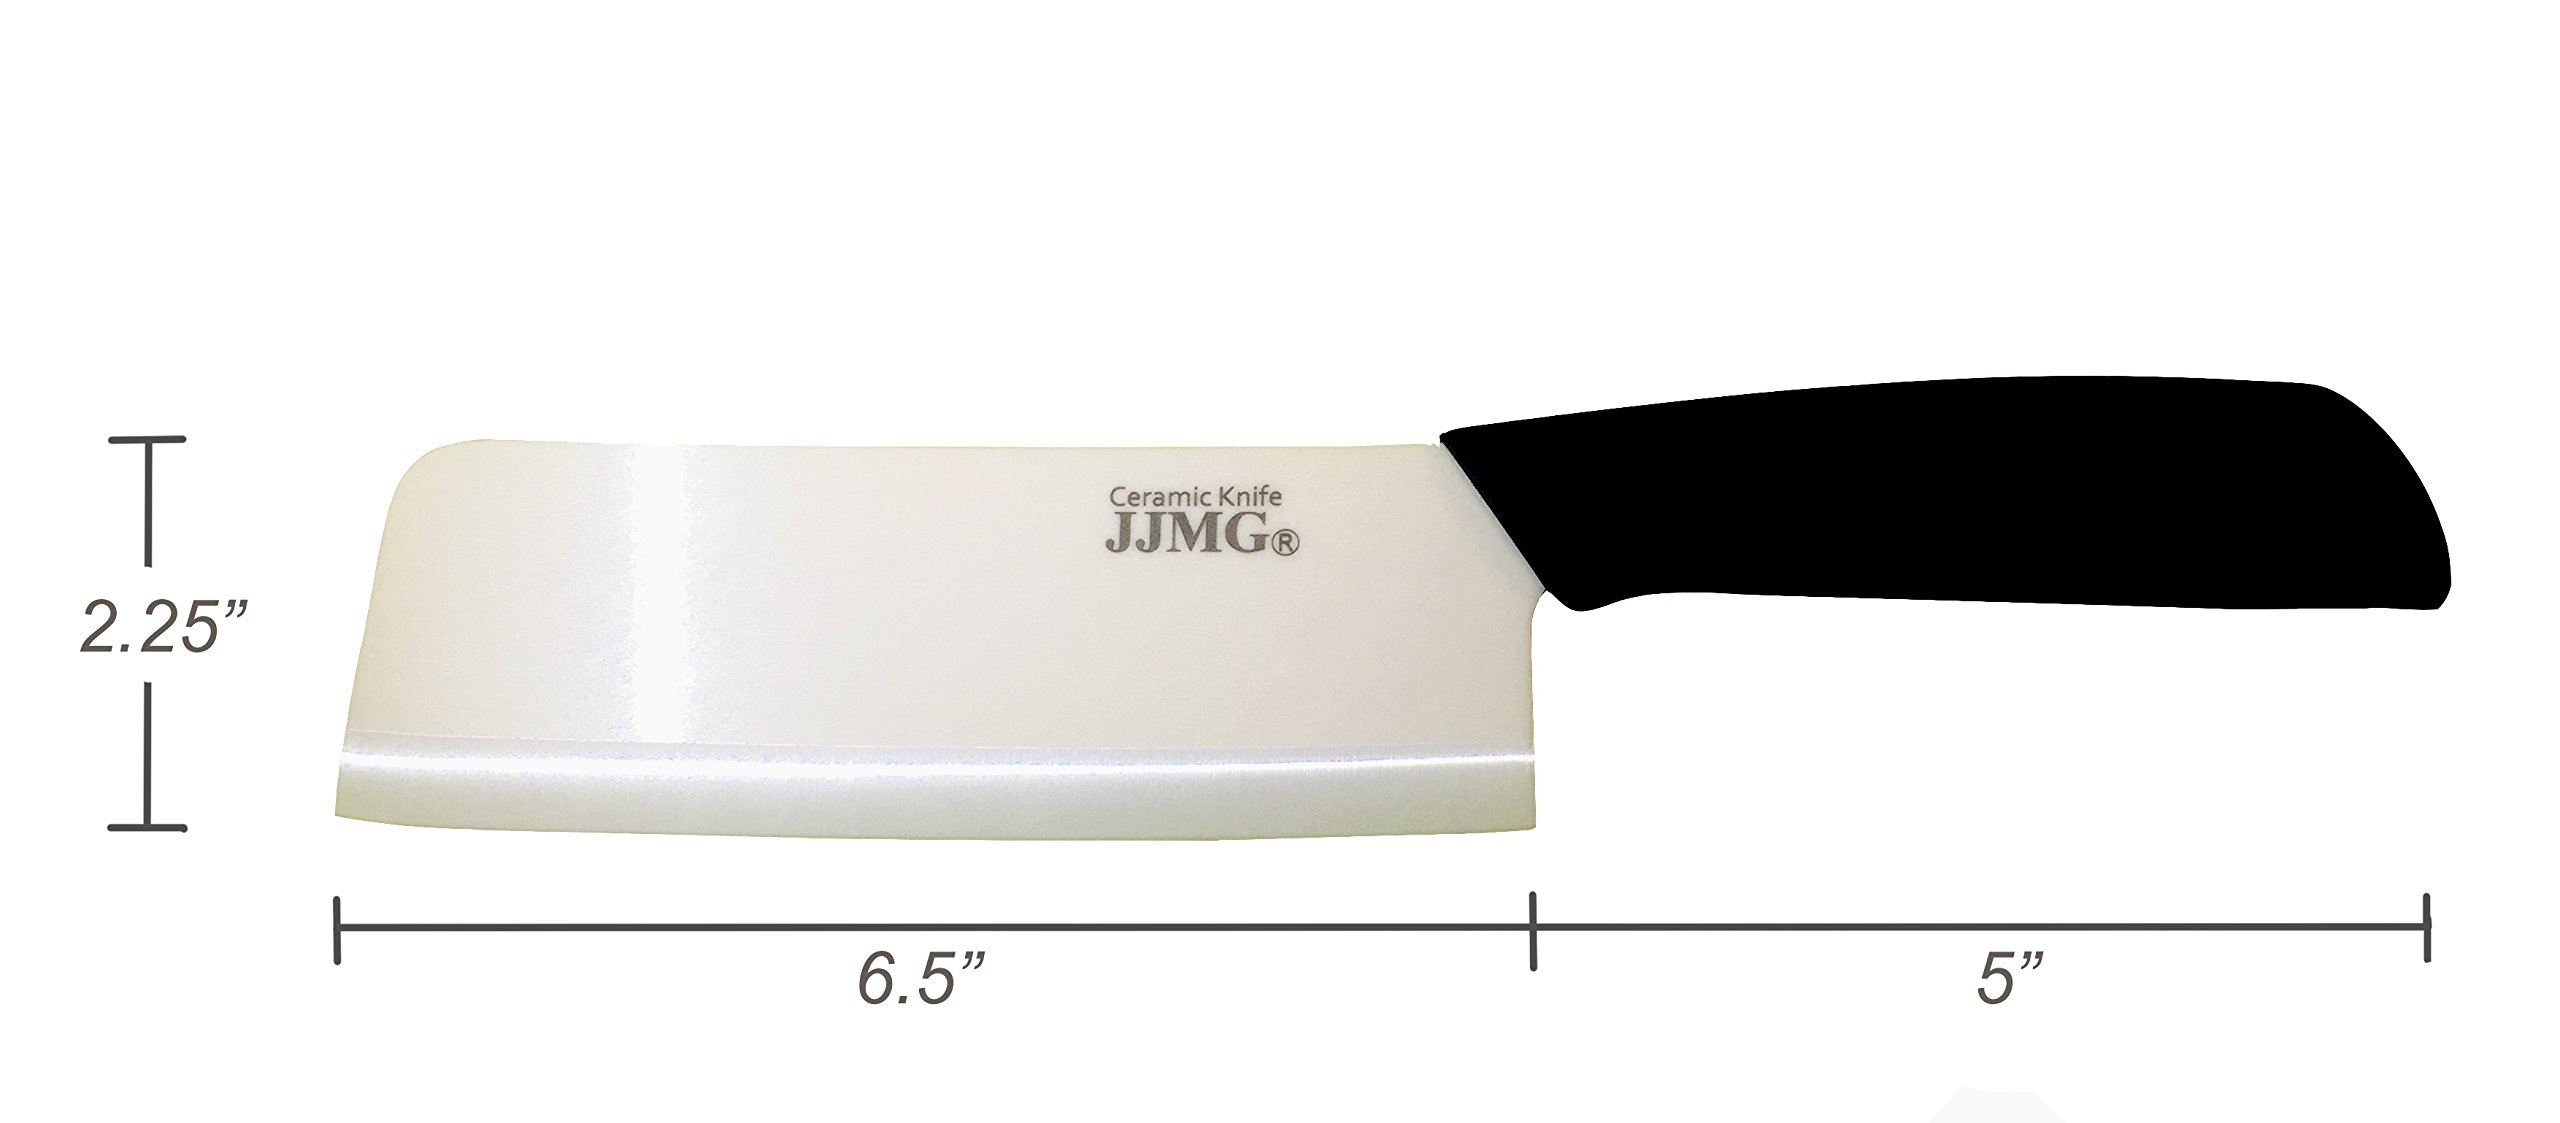 JJMG Ceramic Meat Cleaver Knife Sharp Durable Twice Thicker than Leading Brands non-slip grip Handle Zirconium Blade Cut Slice Dice Steak Pork Chicken Cheese Rust Wear Resistance 5 SHARP & DURABLE LONG LASTING SHARPNESS: Perfect for Cutting Slicing Mincing & Dicing Meat Cheese and Vegetables. Made of High Quality Ceramic, 60 times more Wear-Resistant than Metal knifes. Easy to Maintain, Holds its Sharp Edge. The knifes blades are made by Zirconium, only diamonds are harder, and stays sharp 15 times longer. NO RUST & BPA-FREE: Rust Resistant, Anti-acid and Alkali Material, Non-toxic, No Contamination, No Metal smell, Easy to Use. will retain its original sharpness up to 15 times longer than steel blades. You will never need sharpening any more! NO OXIDATION: Keep your vegetables free from oxidation when cutting with these ceramic knifes. Keep your vegetables meat & food fresh for a longer period of time.